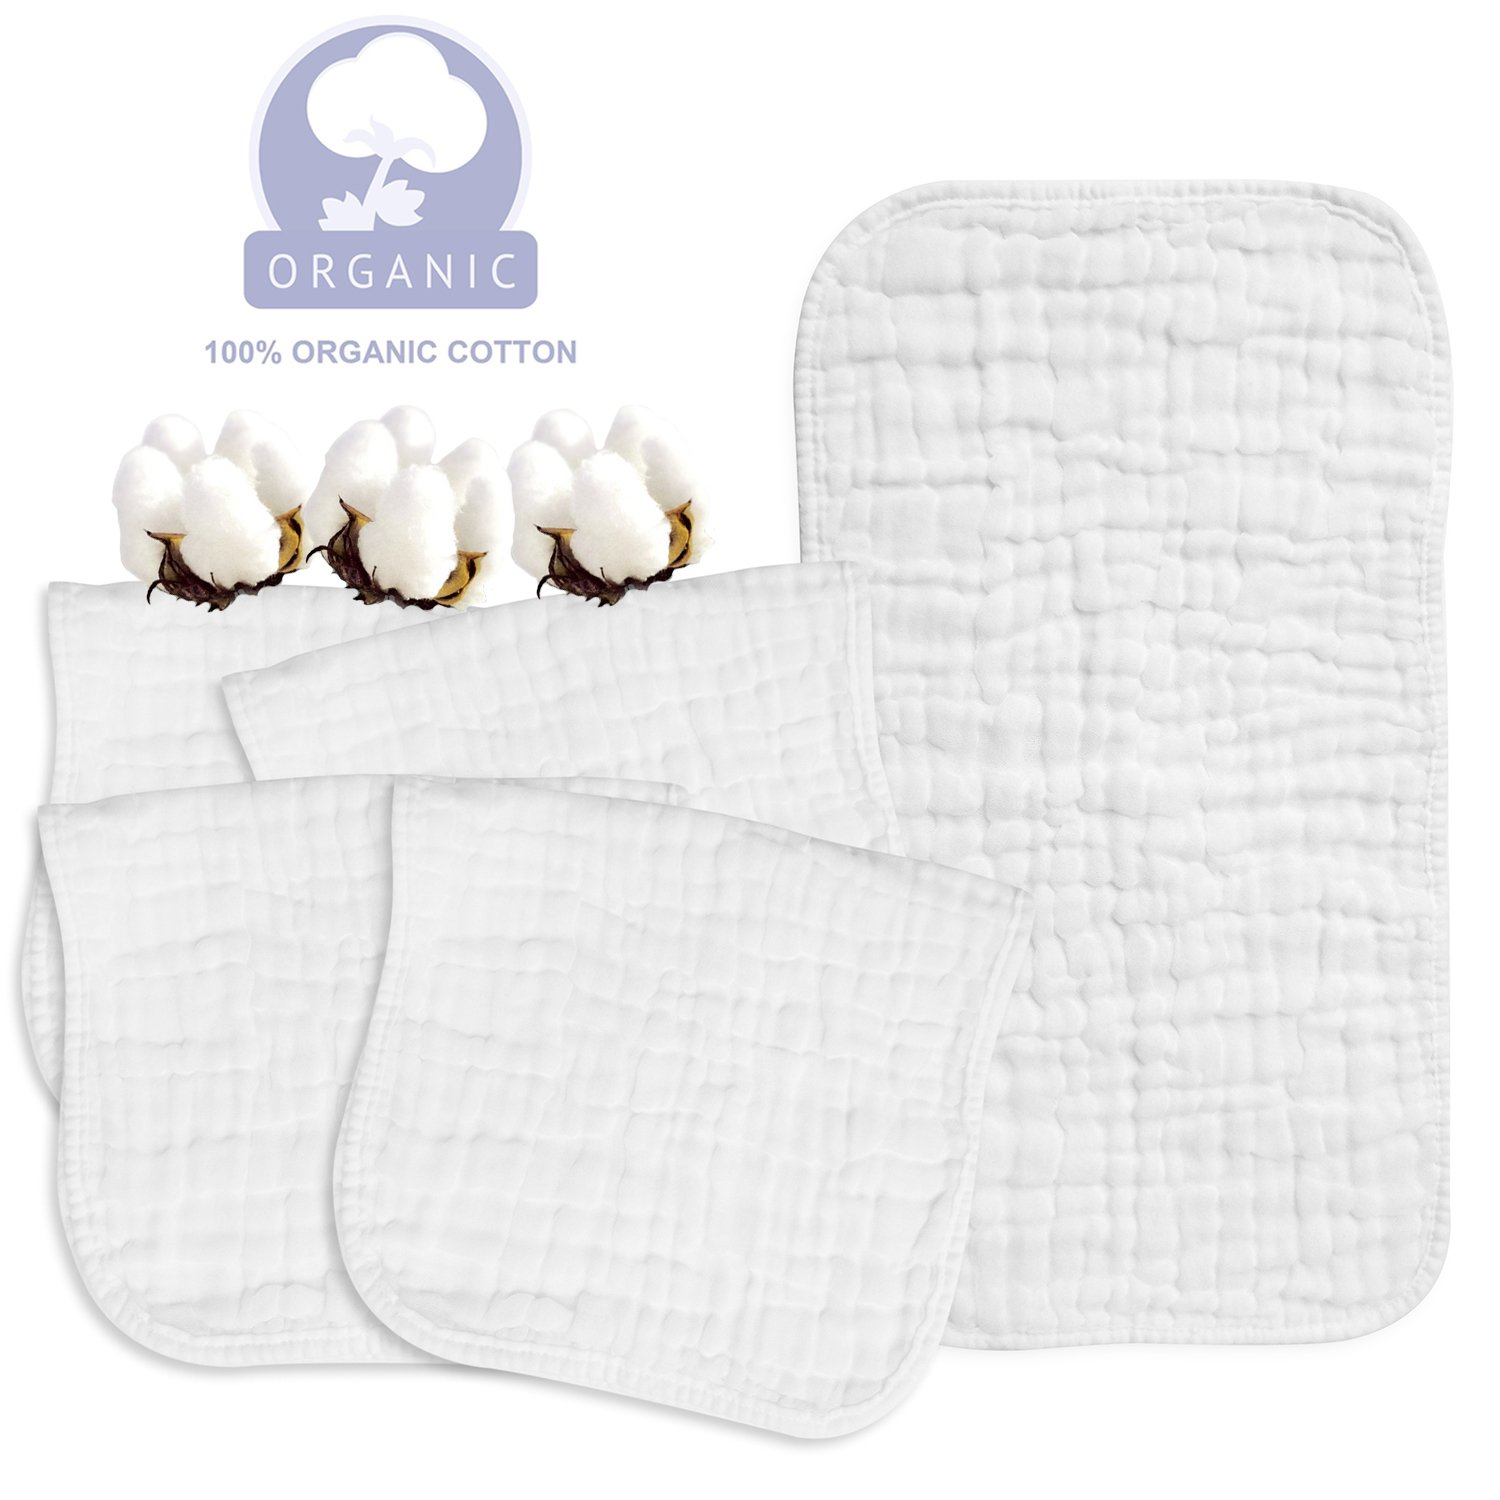 Muslin Burp Cloths made from 100% Cotton,saliva towel,Multi-Use Soft Burp Cloths Boys/Girls - Excellent Shower Gift,White Set, 5 Pack, Large 20''x10''